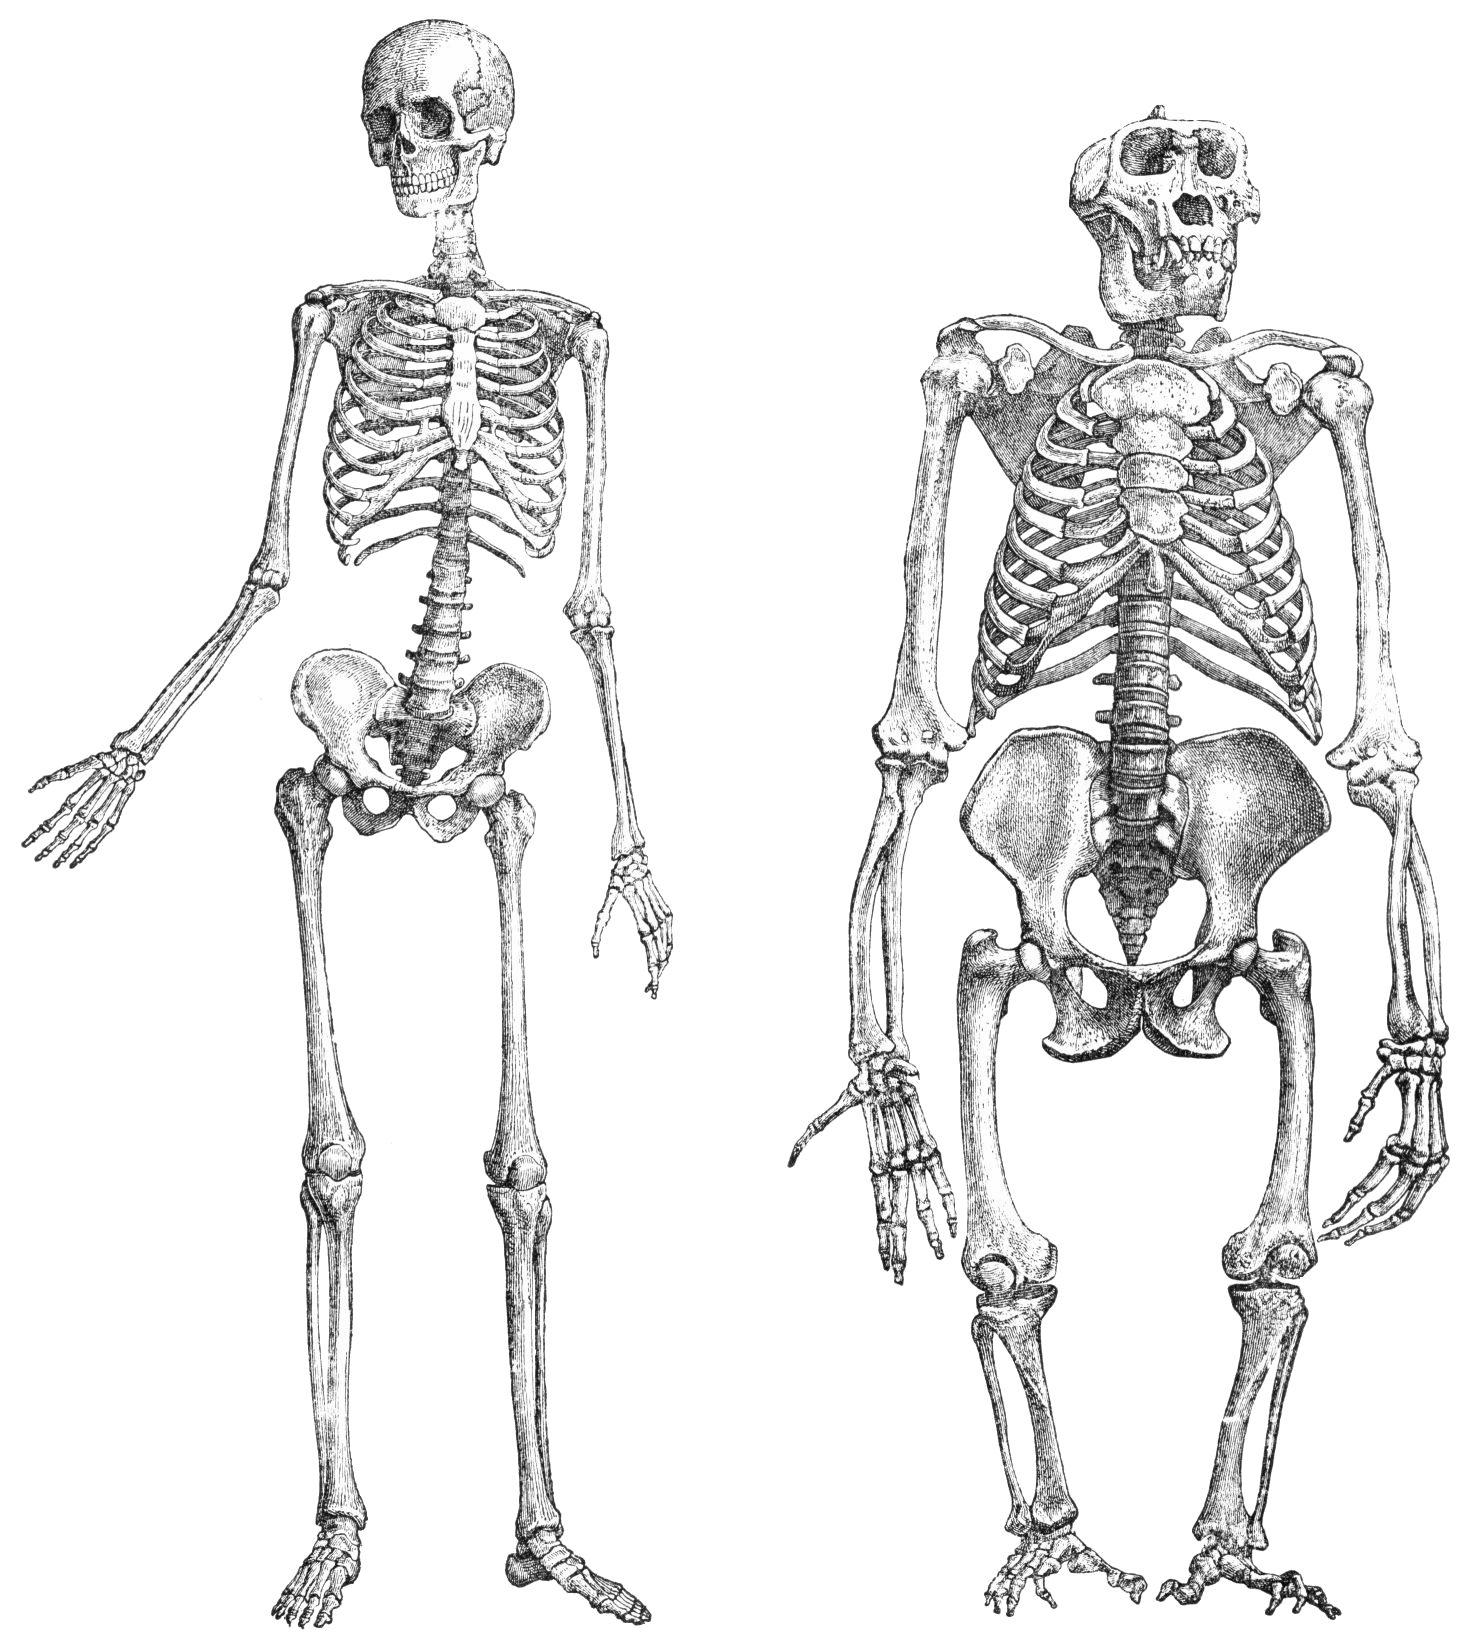 Skeleton png transparent. File primatenskelett drawing wikimedia